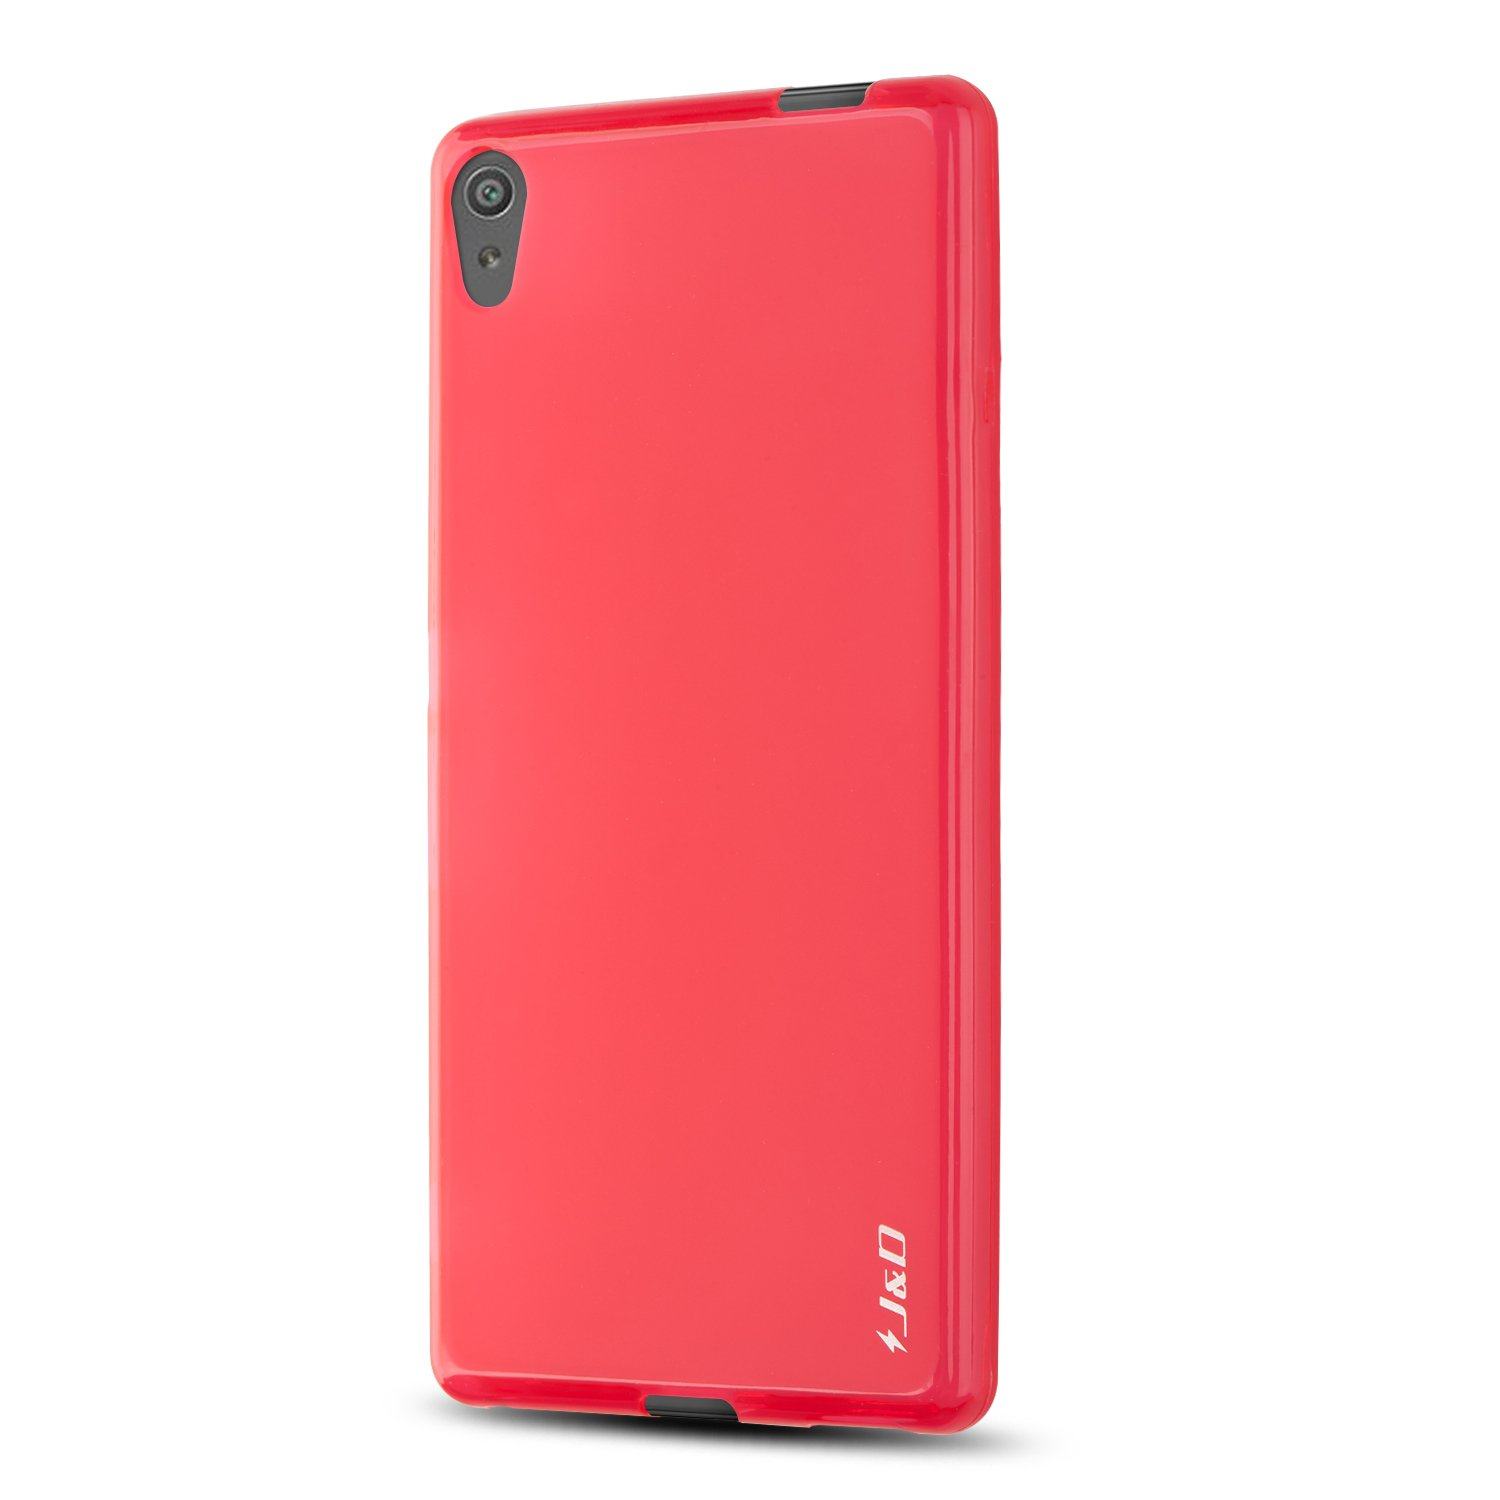 Sony Xperia XA Ultra Case, J&D [Drop Protection] [Slim Cushion] [Lightweight Bumper] Shock Resistant Protective TPU Slim Case for Sony Xperia XA Ultra - Red